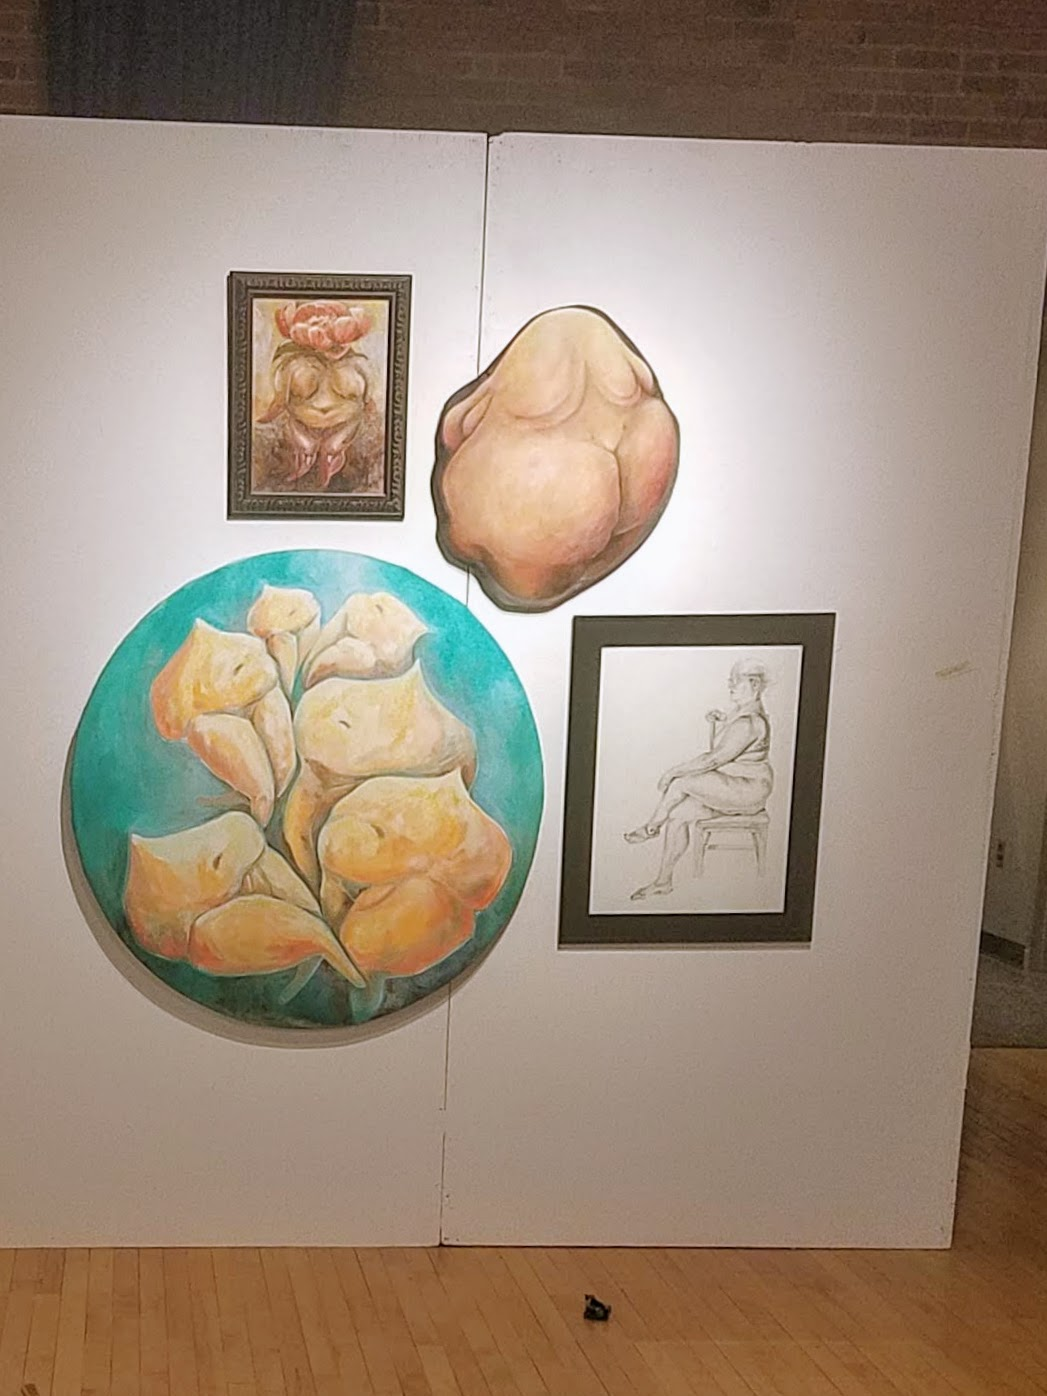 My exhibit went through several changes throughout the residency. I have so many plans for Summer 2019!